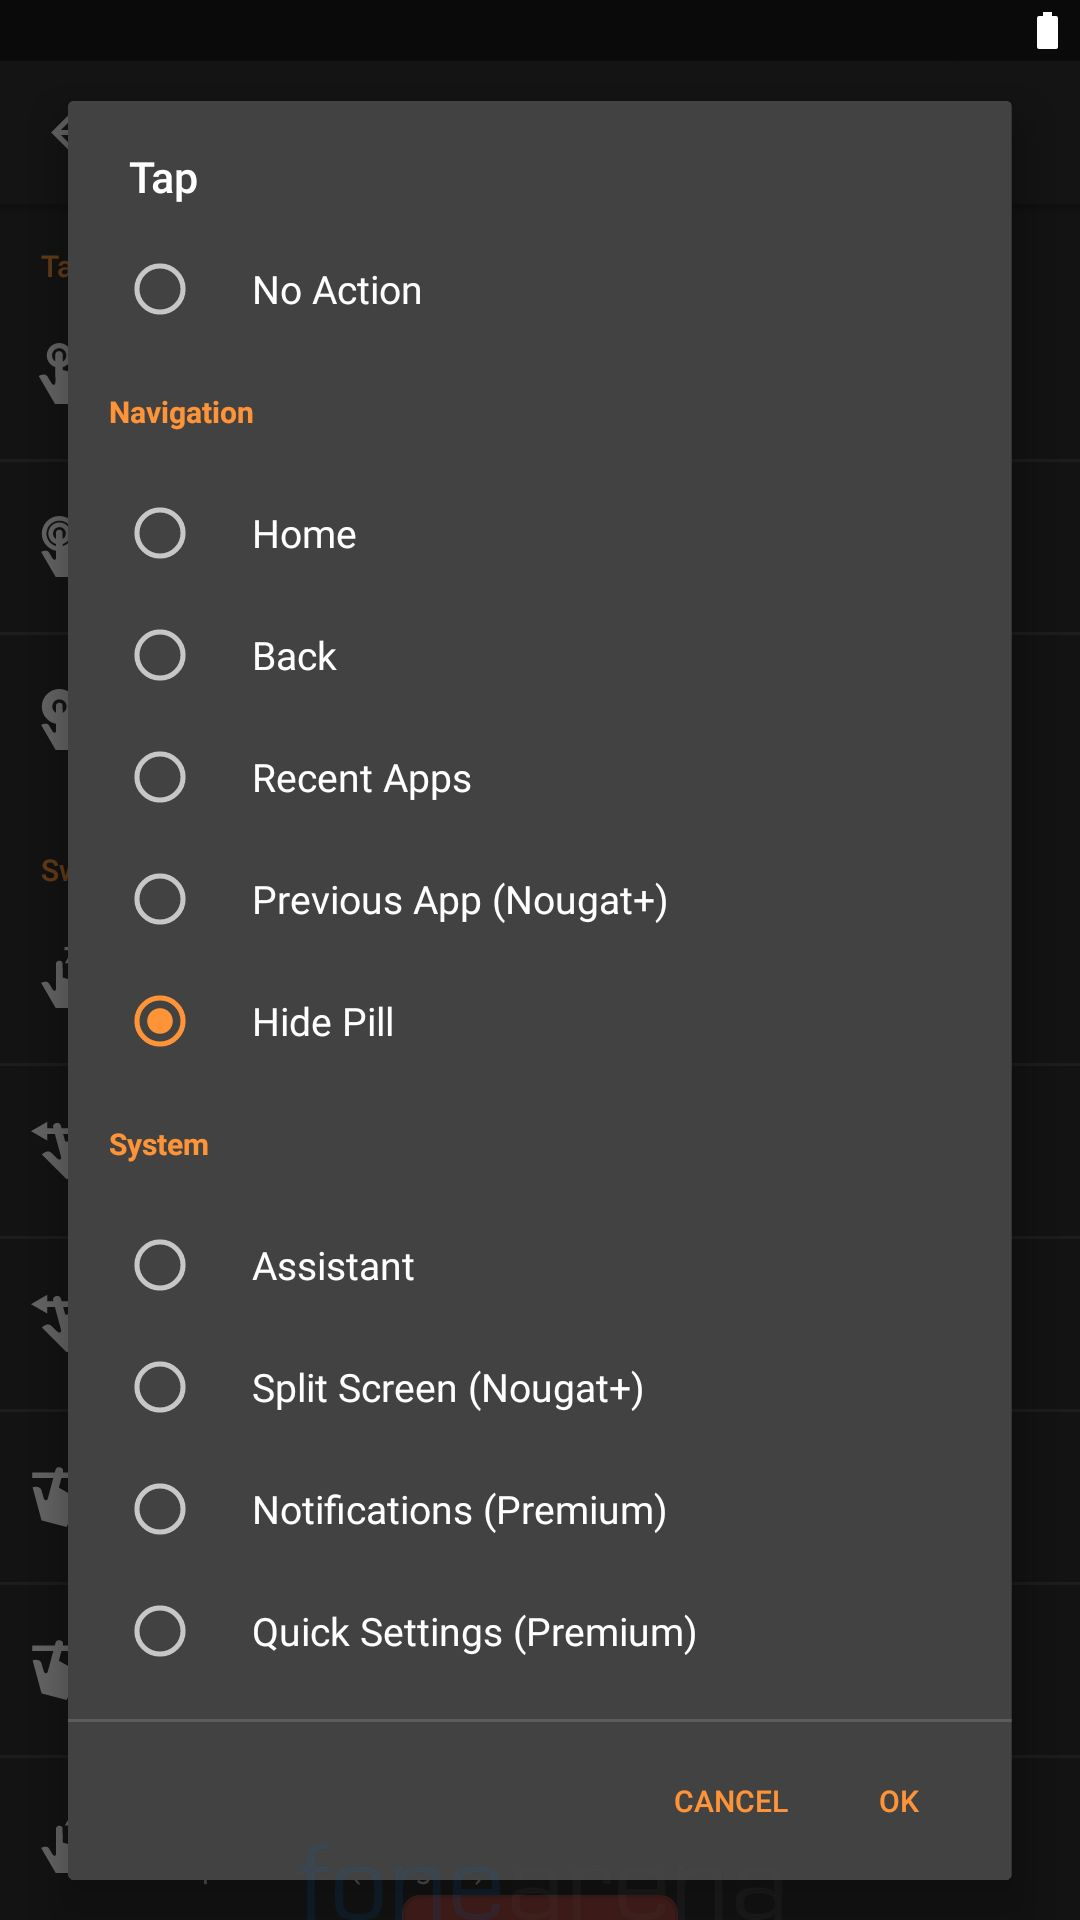 Get Android Pie-like Navigation gestures on any device